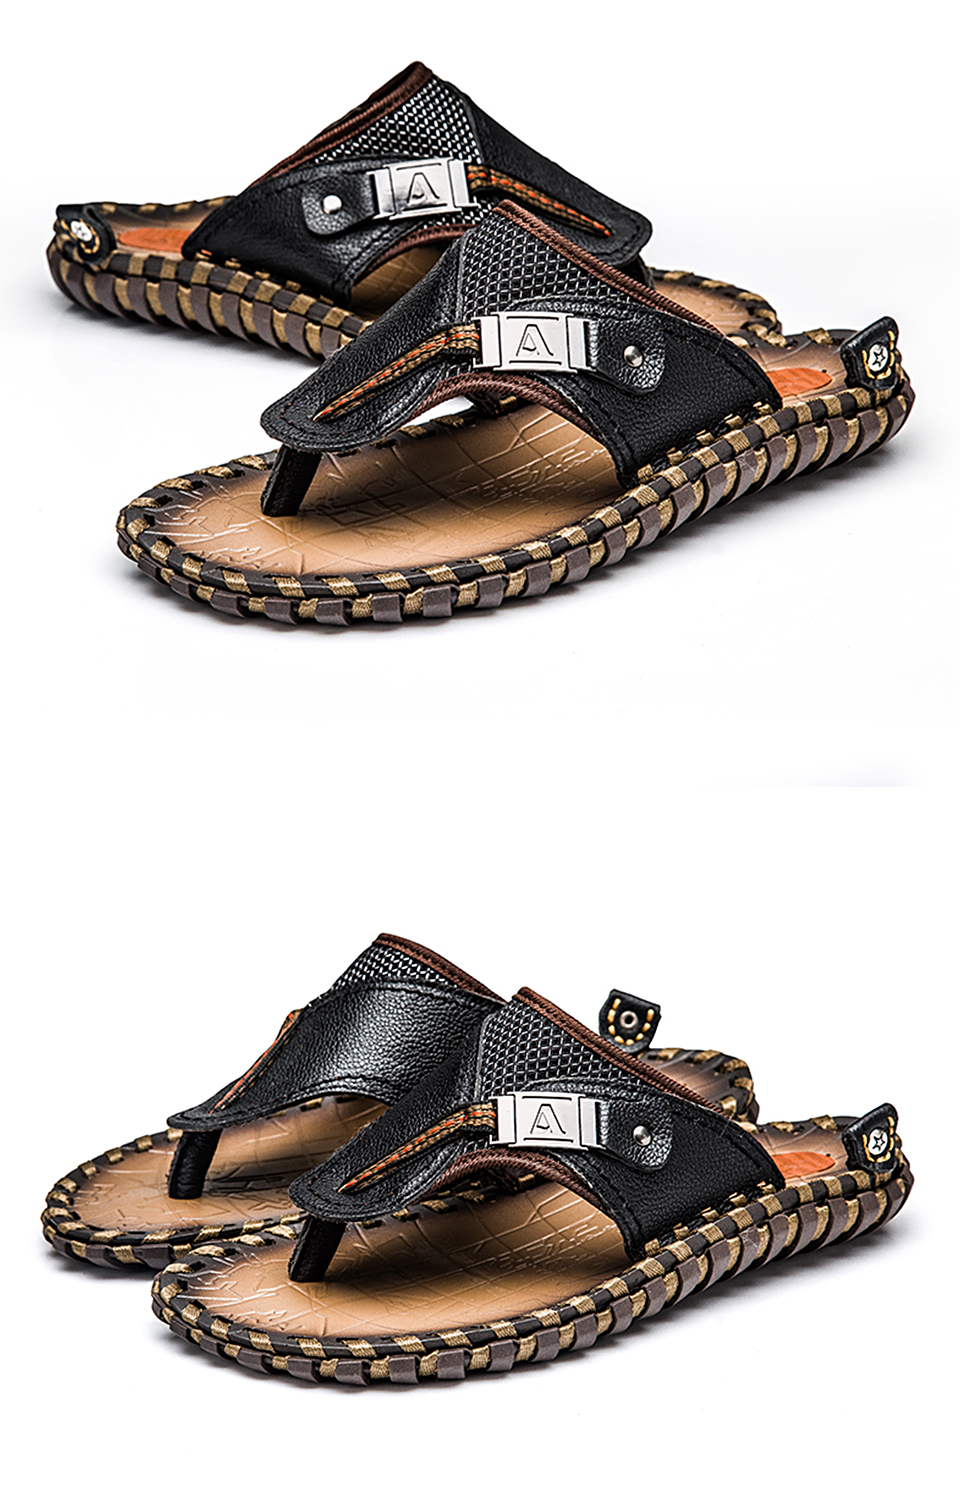 HTB1JaI8LQvoK1RjSZPfq6xPKFXab - VRYHEID Brand Men's Flip Flops Genuine Leather Luxury Slippers Beach Casual Sandals Summer for Men Fashion Shoes New Big Size 48